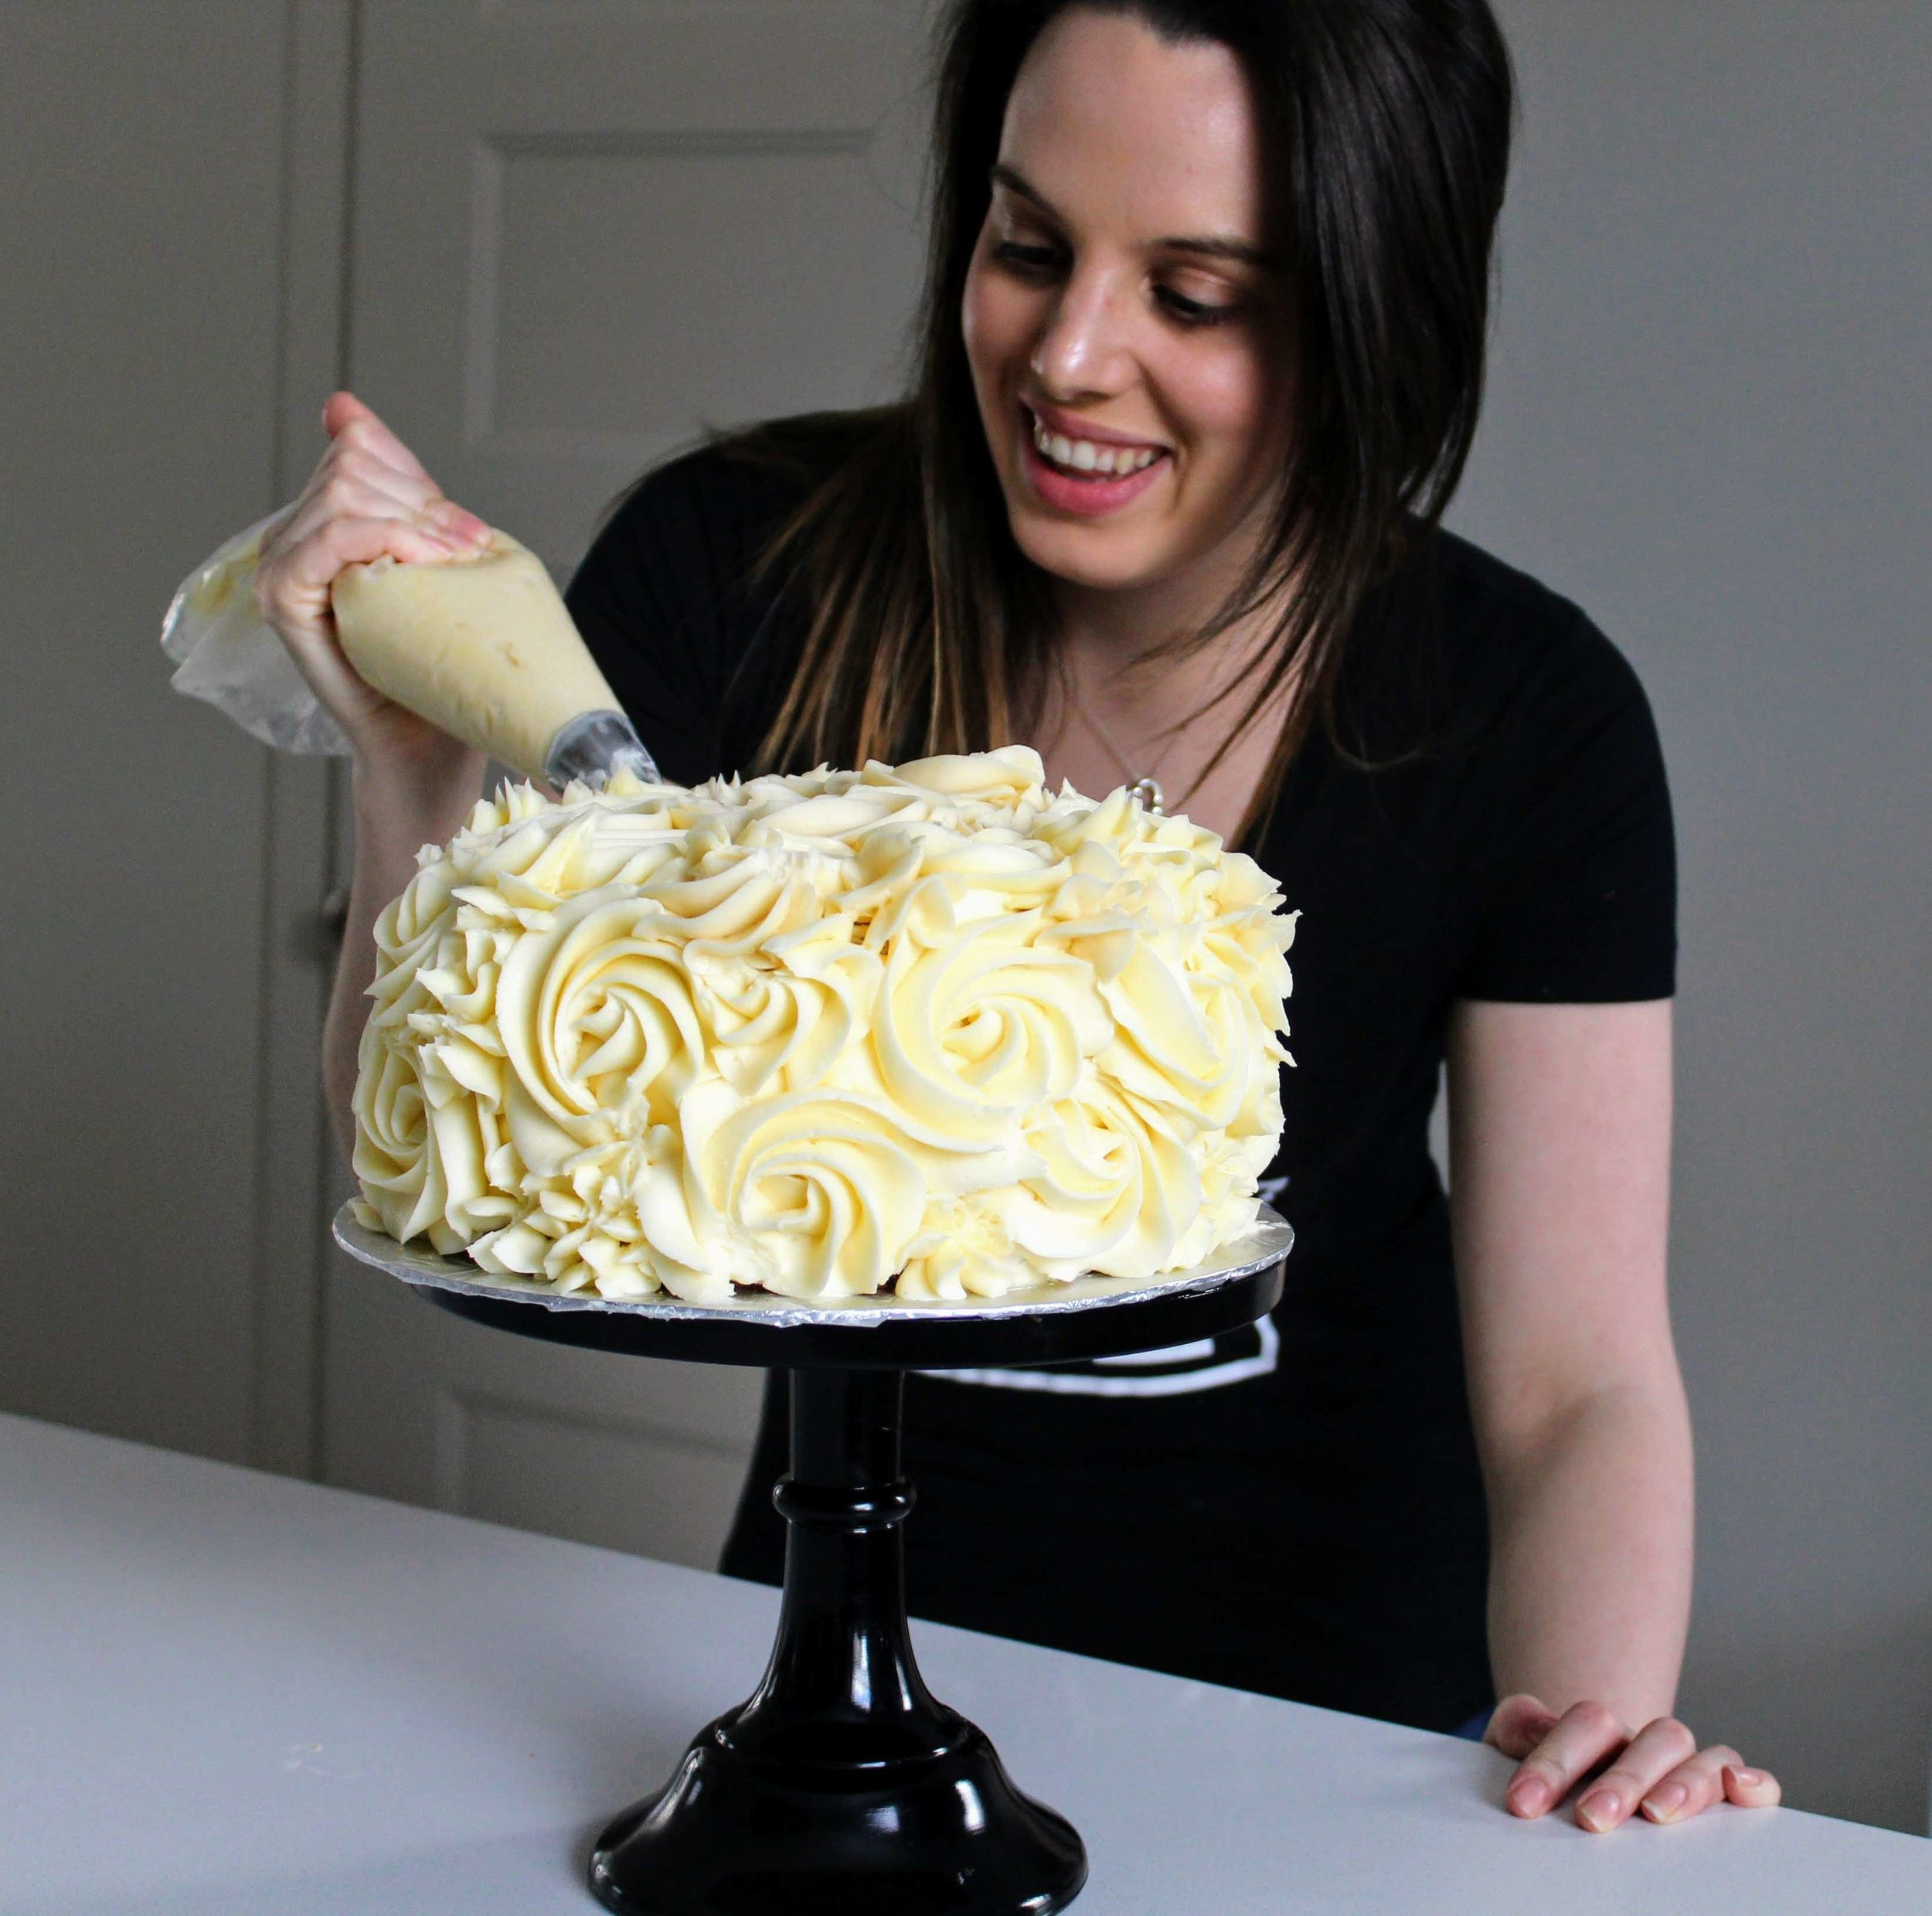 Learn how to make a buttercream rosette cake using just a Wilton 1B decorating tip!